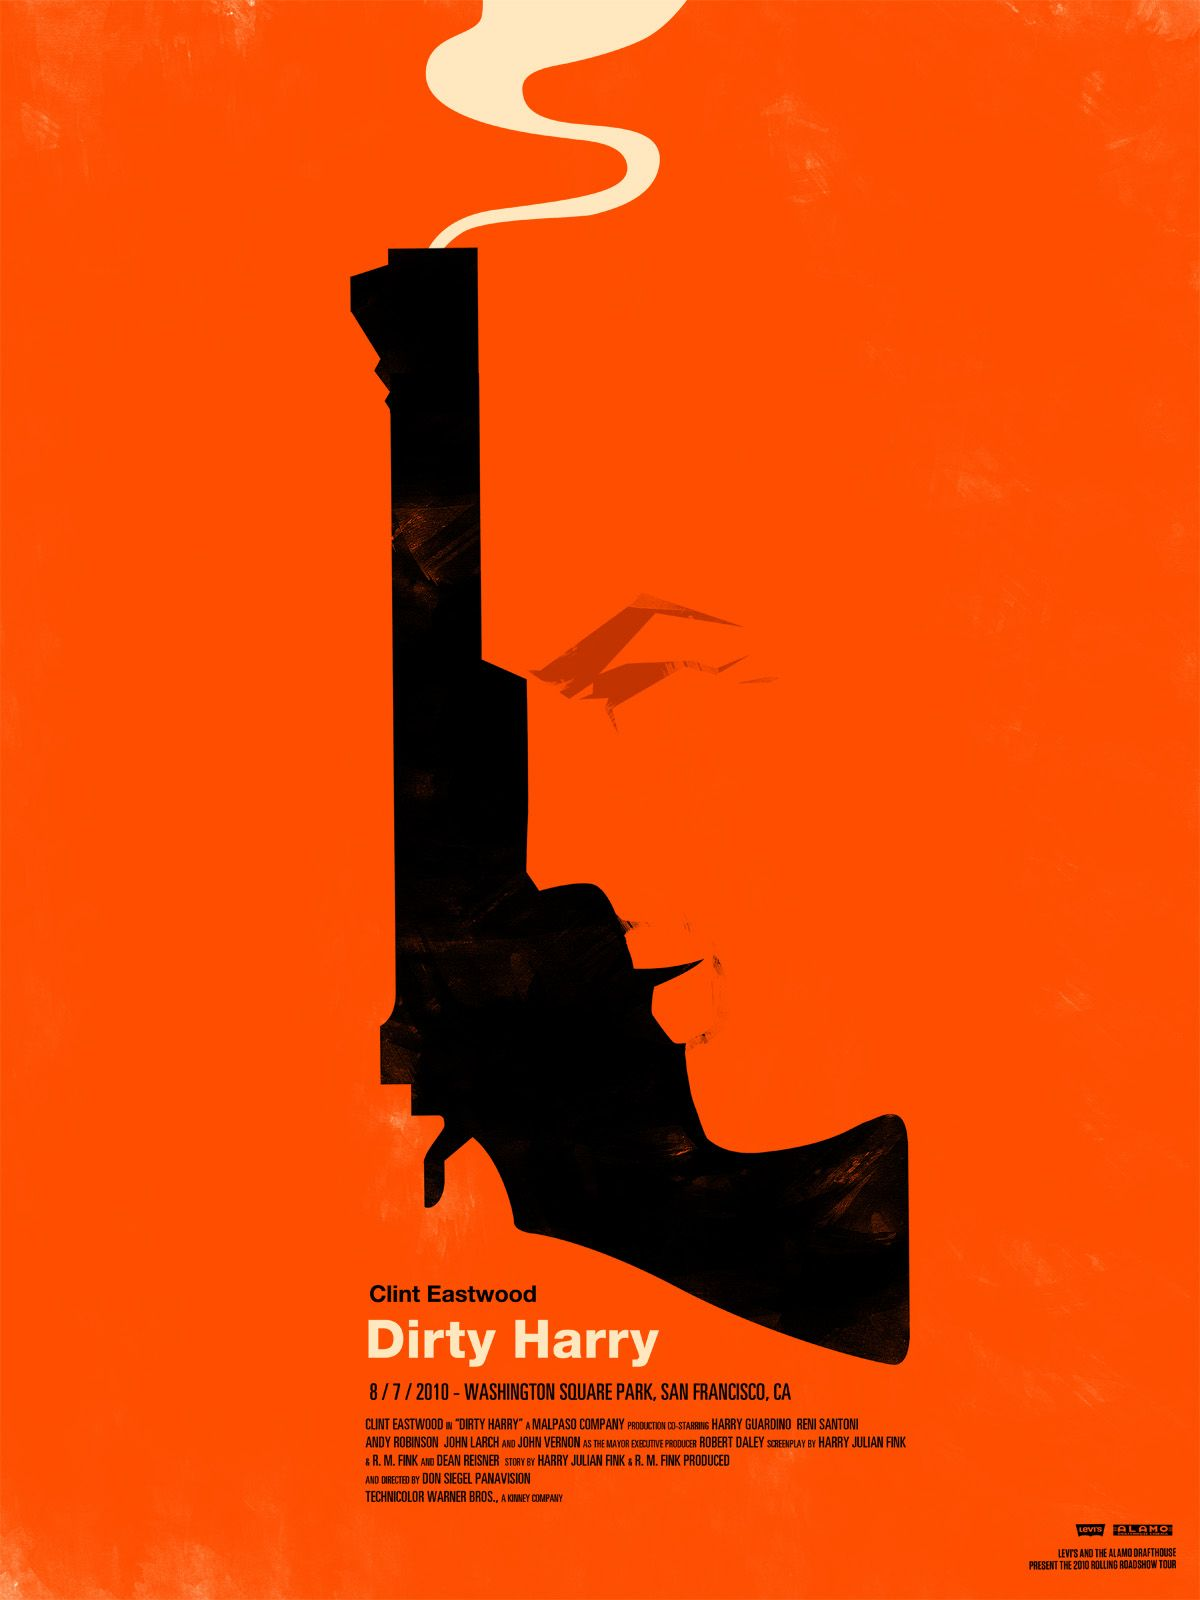 Dirty Harry   That's Entertainment!   Movie posters, Minimal